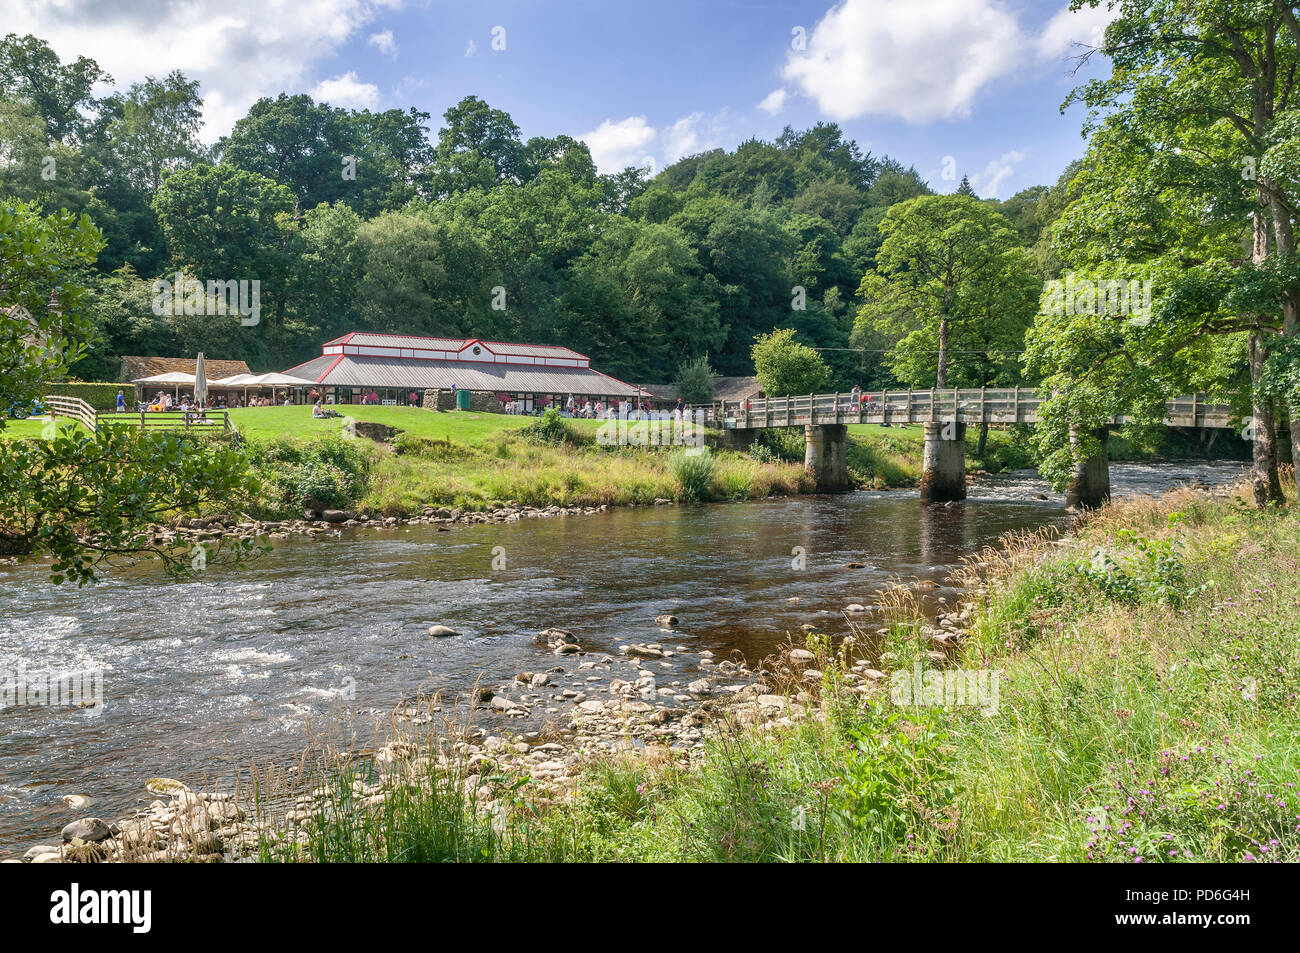 Bolton Abbey. West Yorkshire. River Wharfe. The Devonshire Pavillion cafe. - Stock Image